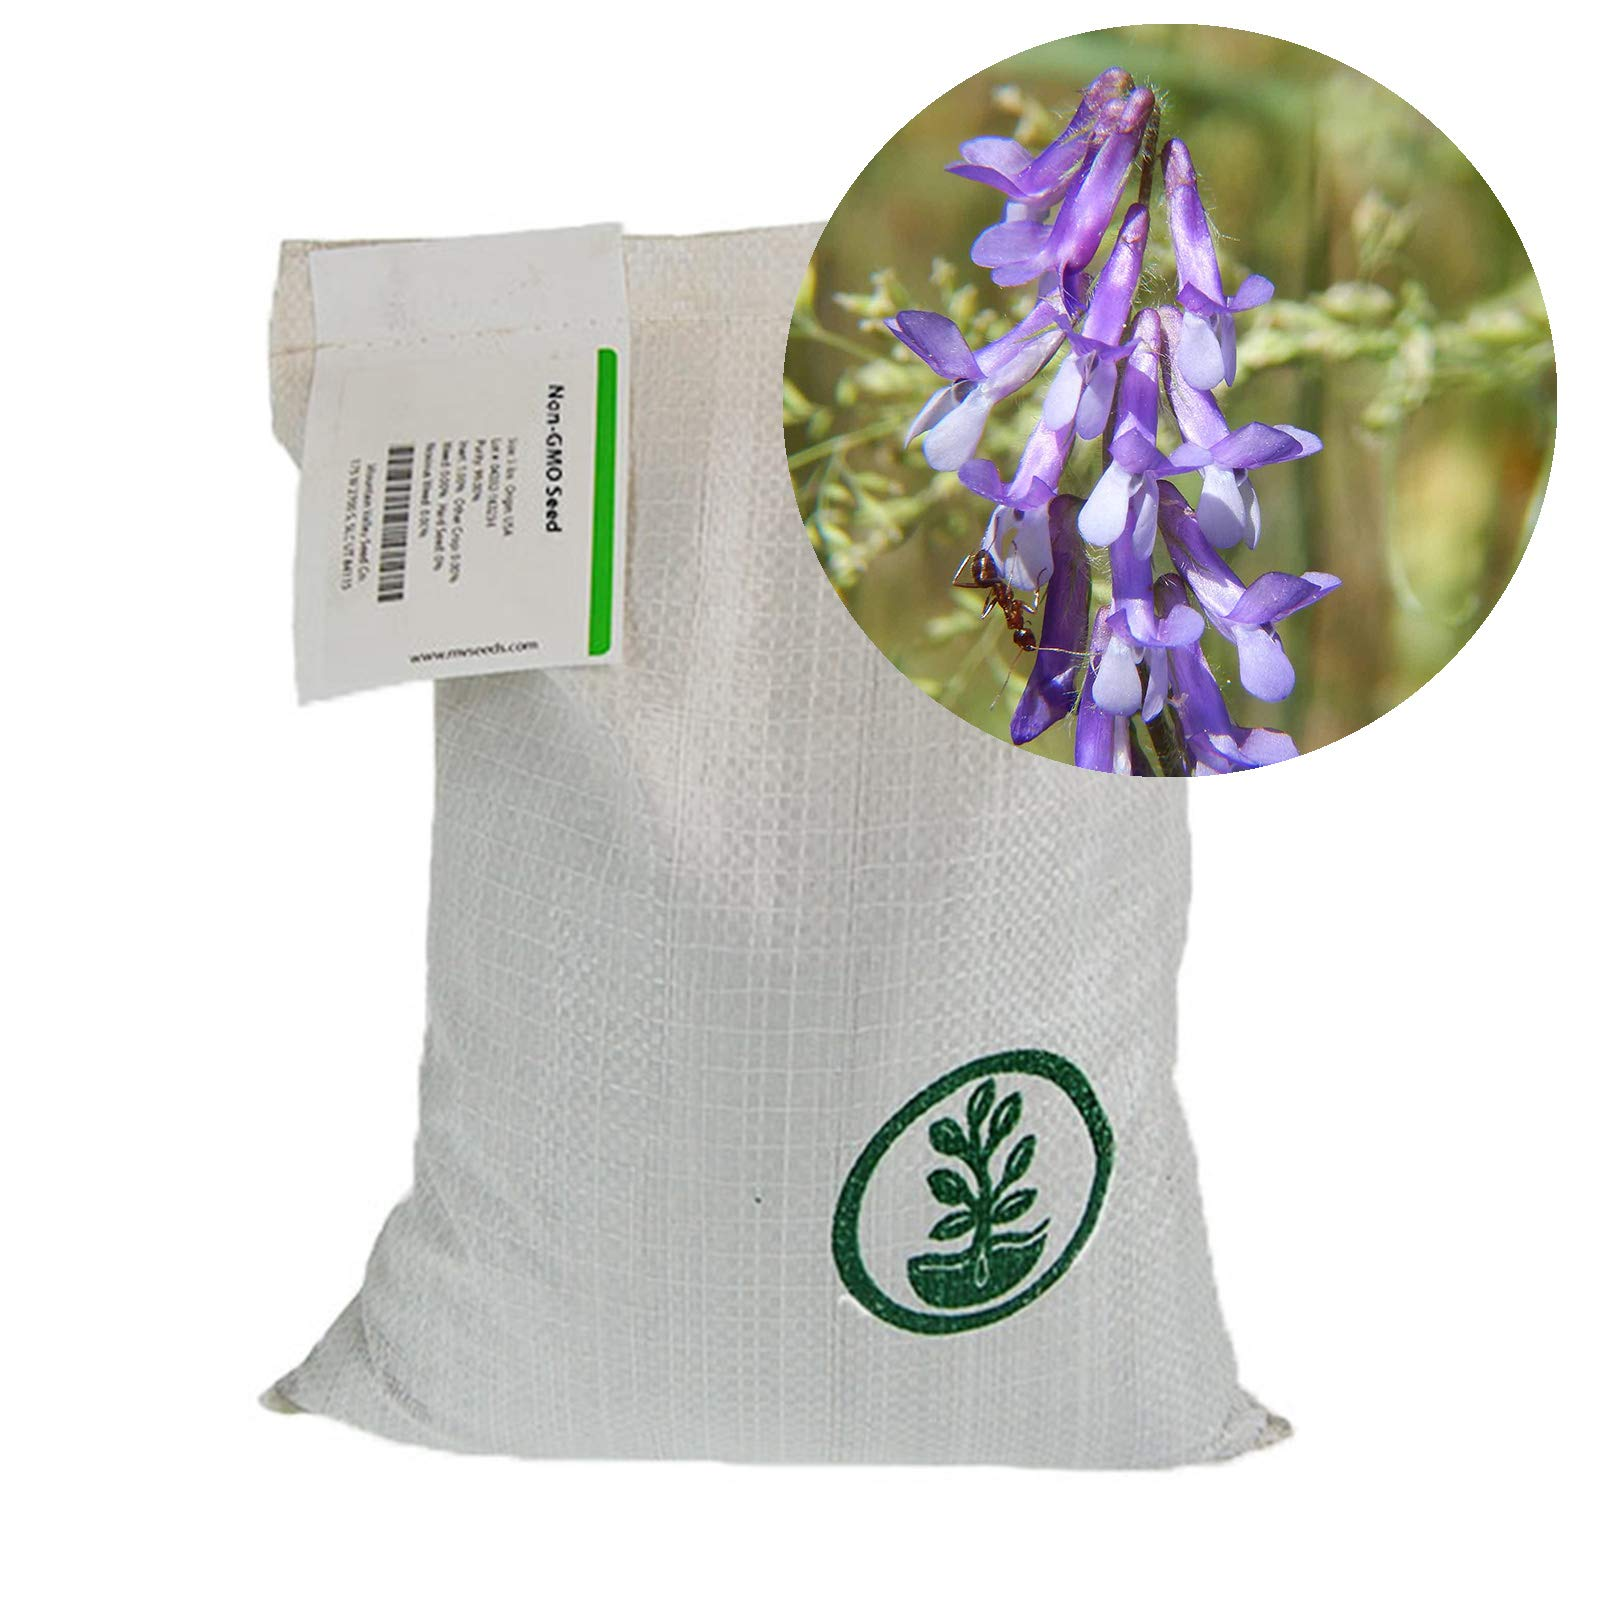 Hairy Vetch Winter Cover Crop Seeds - 50 Lbs Bulk - Field & Pasture Legume Cover Crop Seed